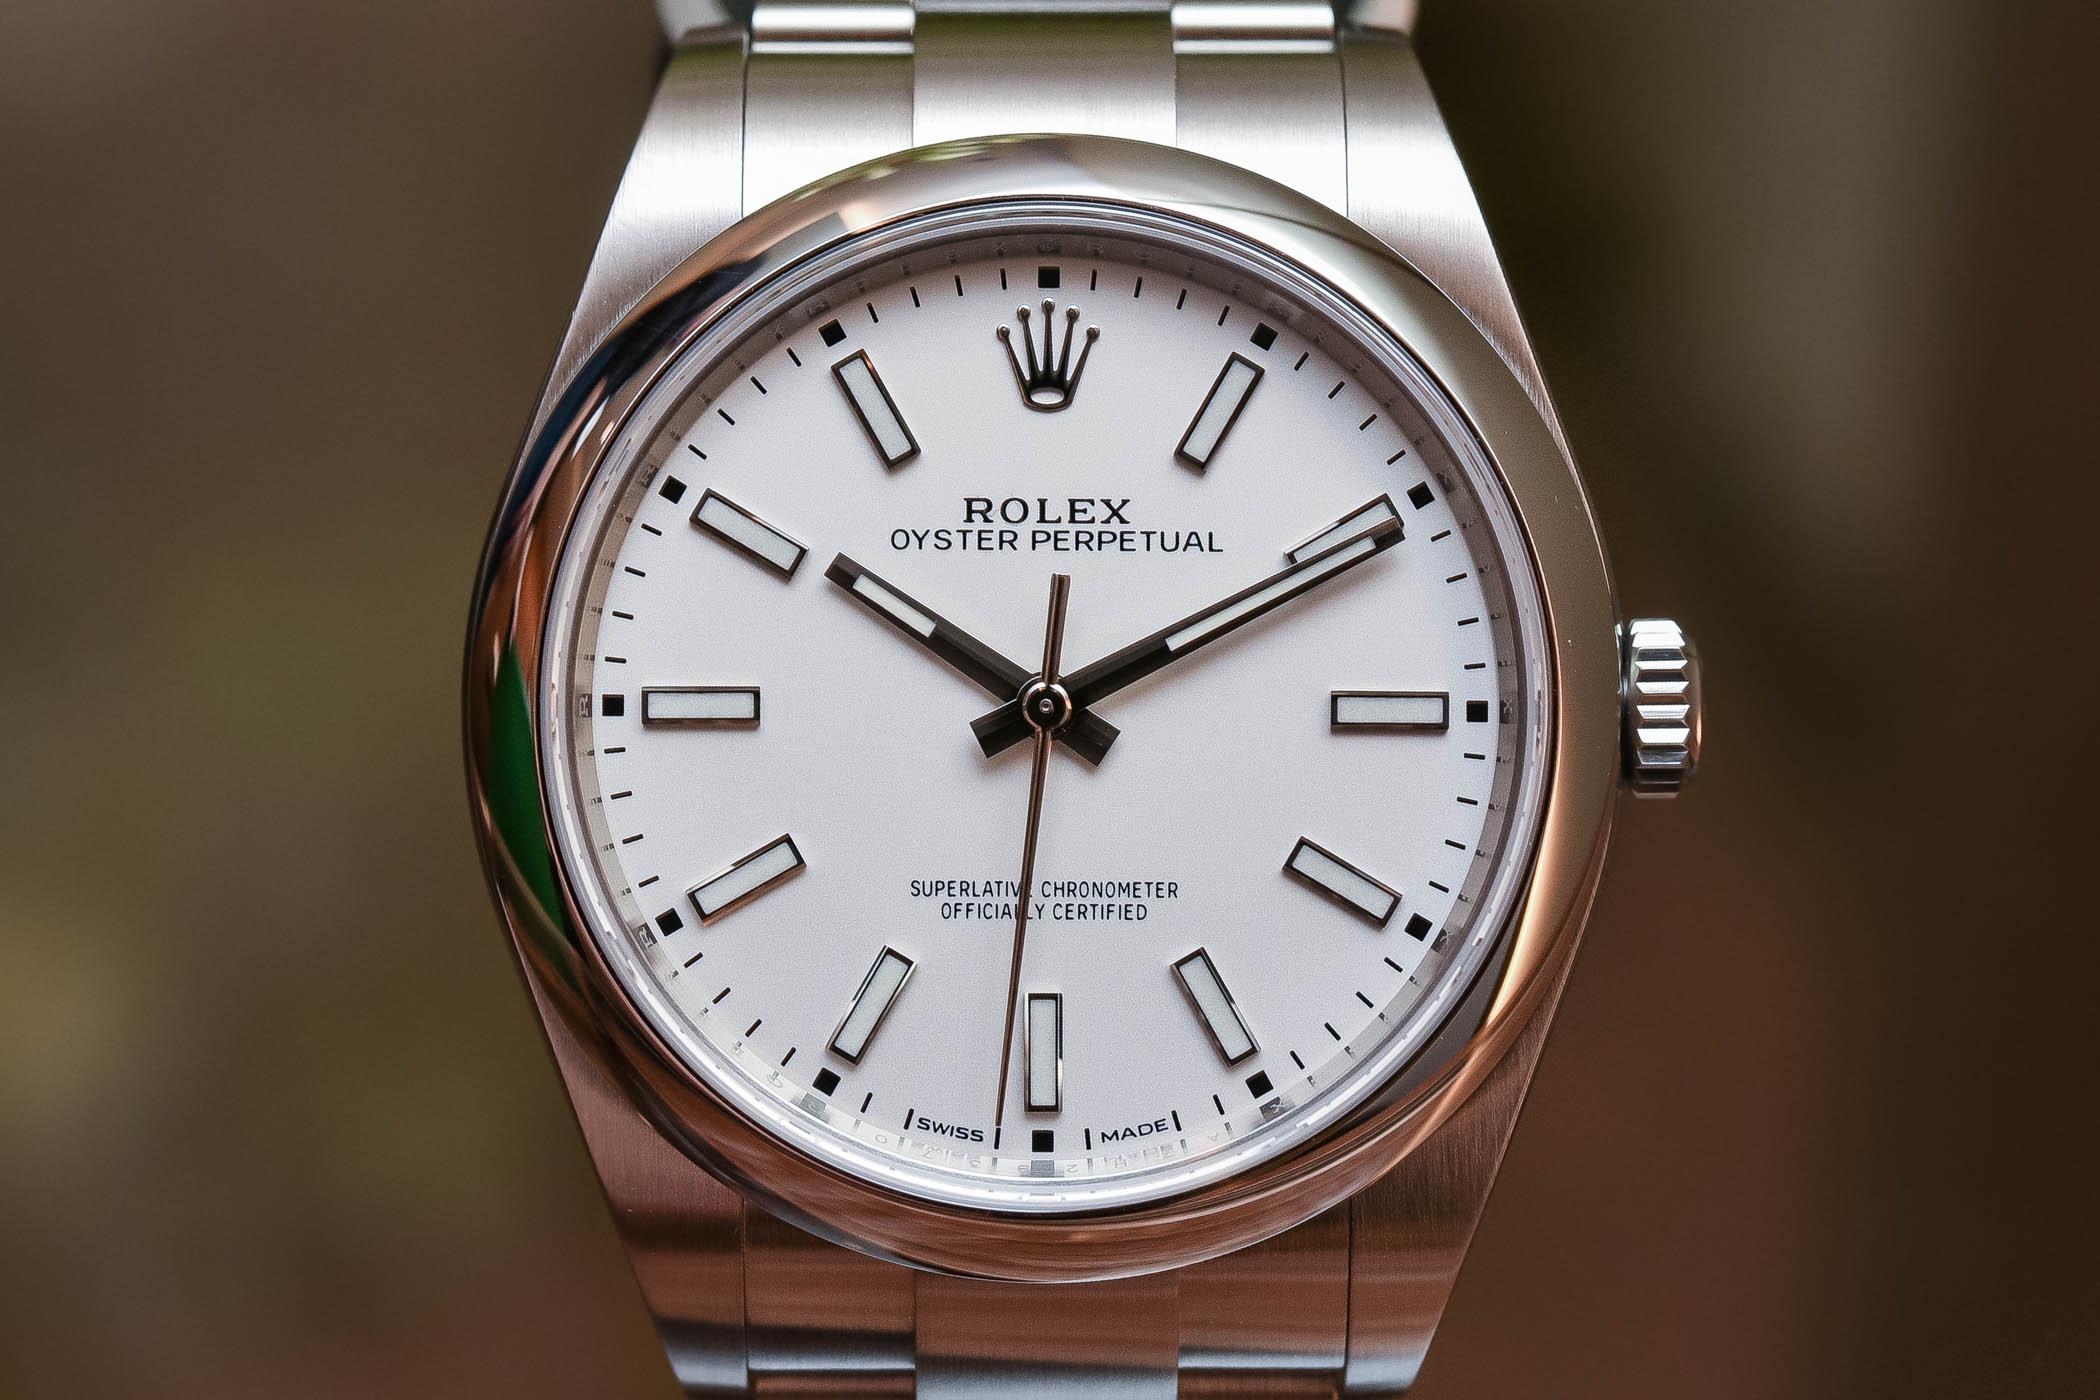 65dc6a19a8b Rolex Oyster Perpetual 39 Ref. 114300 White Dial - Baselworld 2018 ...